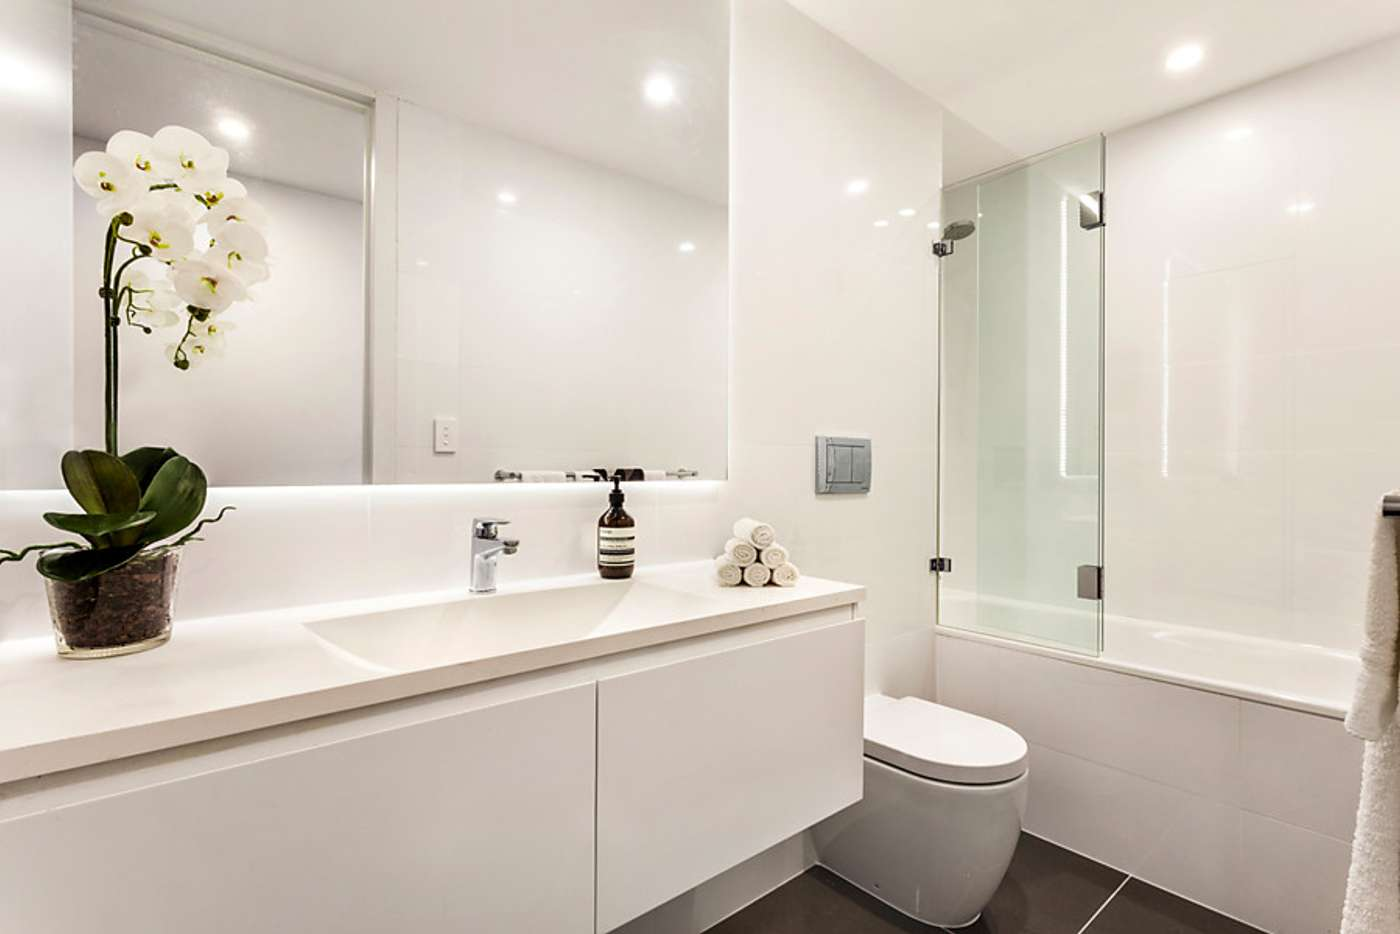 Fifth view of Homely apartment listing, 12/4 Sydney Street, Prahran VIC 3181